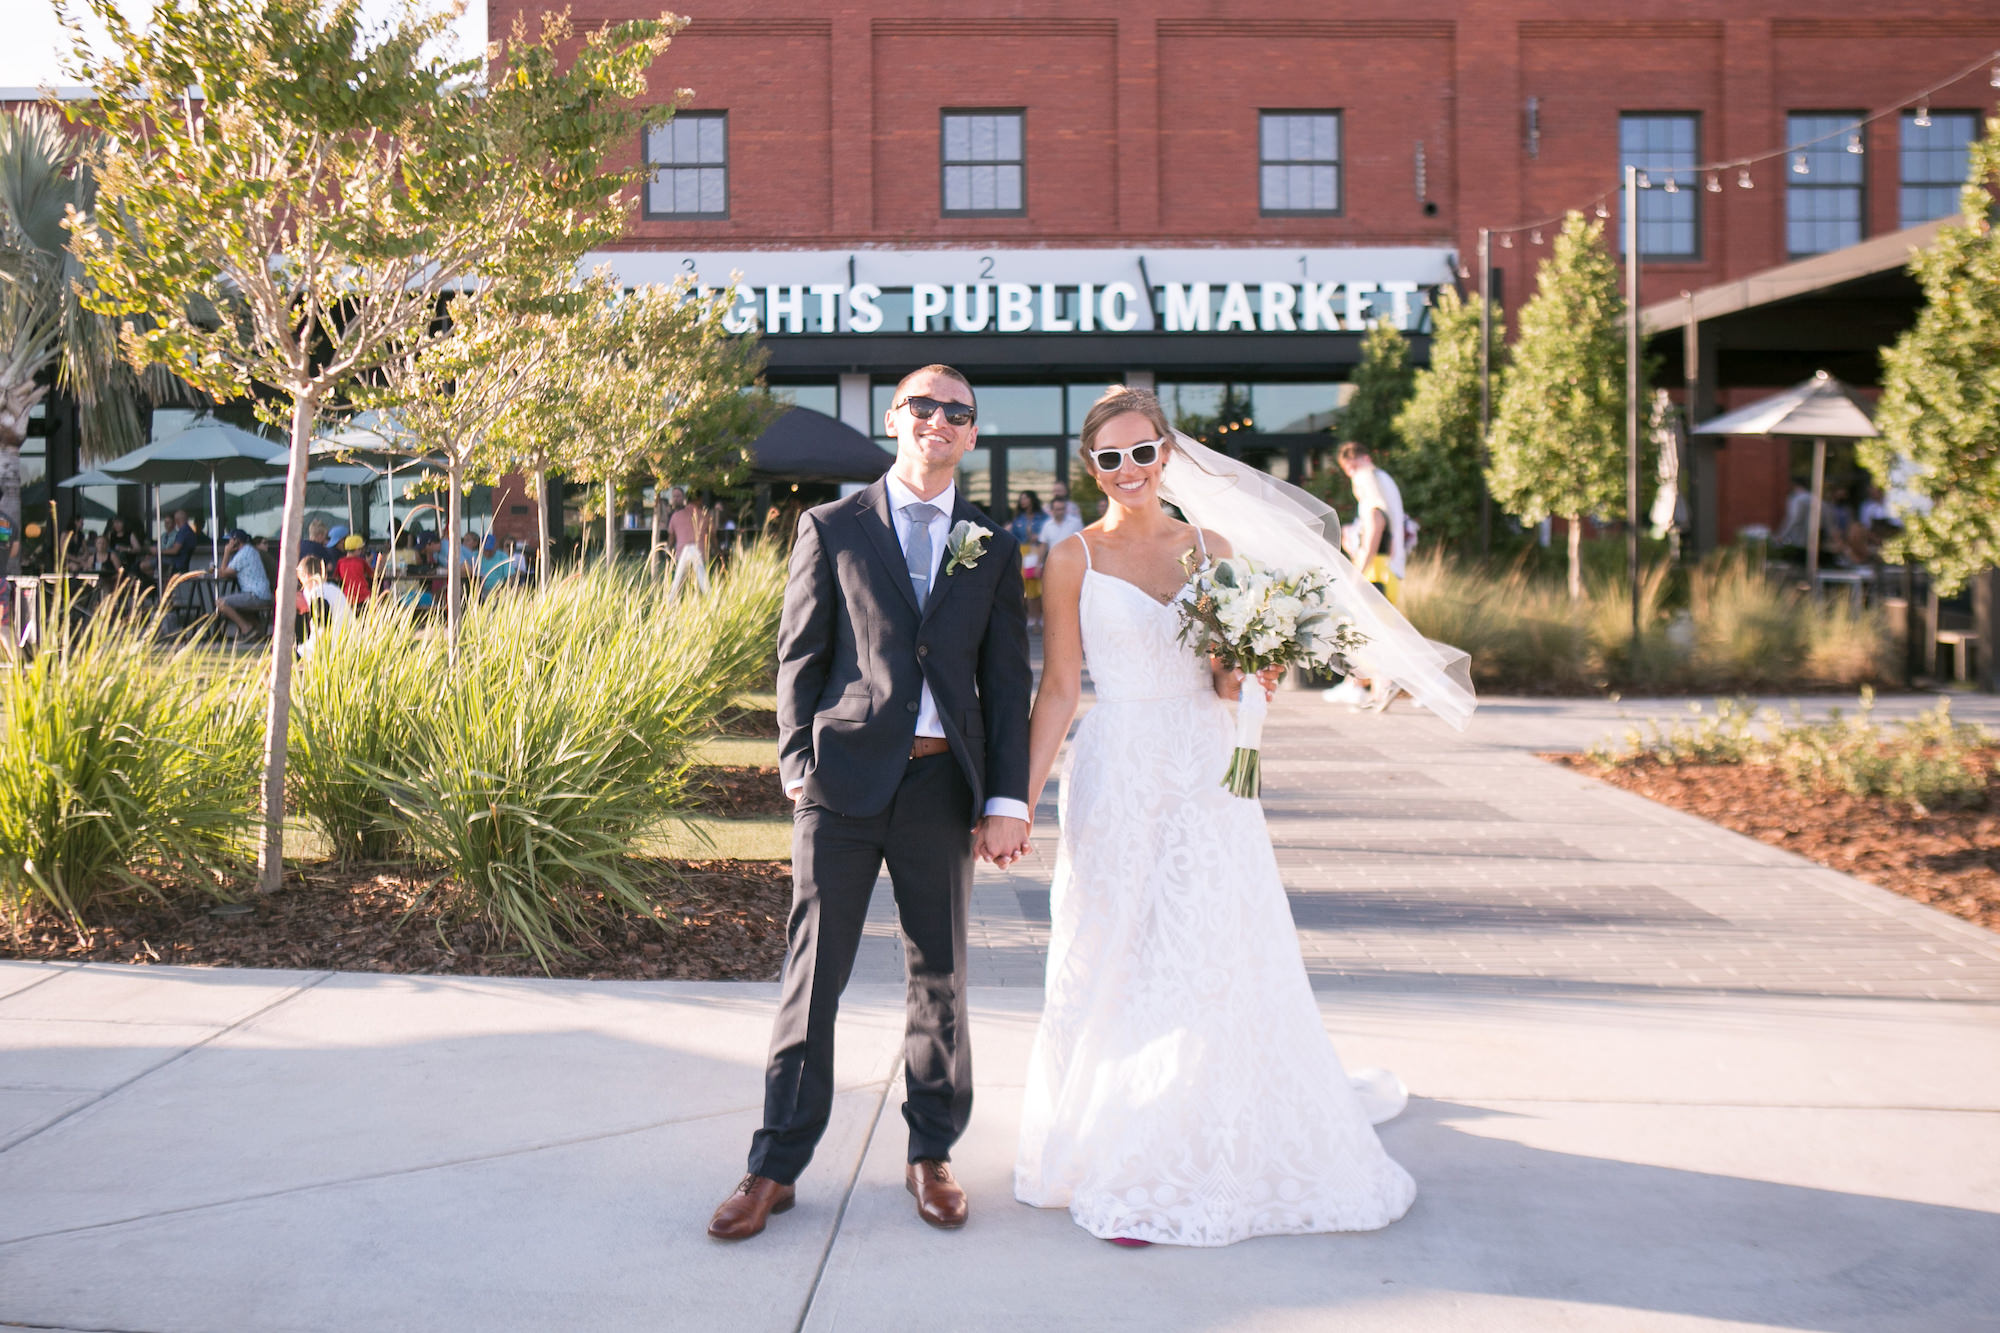 Fun Bride and Groom Portrait in Sunglasses   Tampa Bay Wedding Photographer Carrie Wildes Photography   Historic Wedding Venue Armature Works